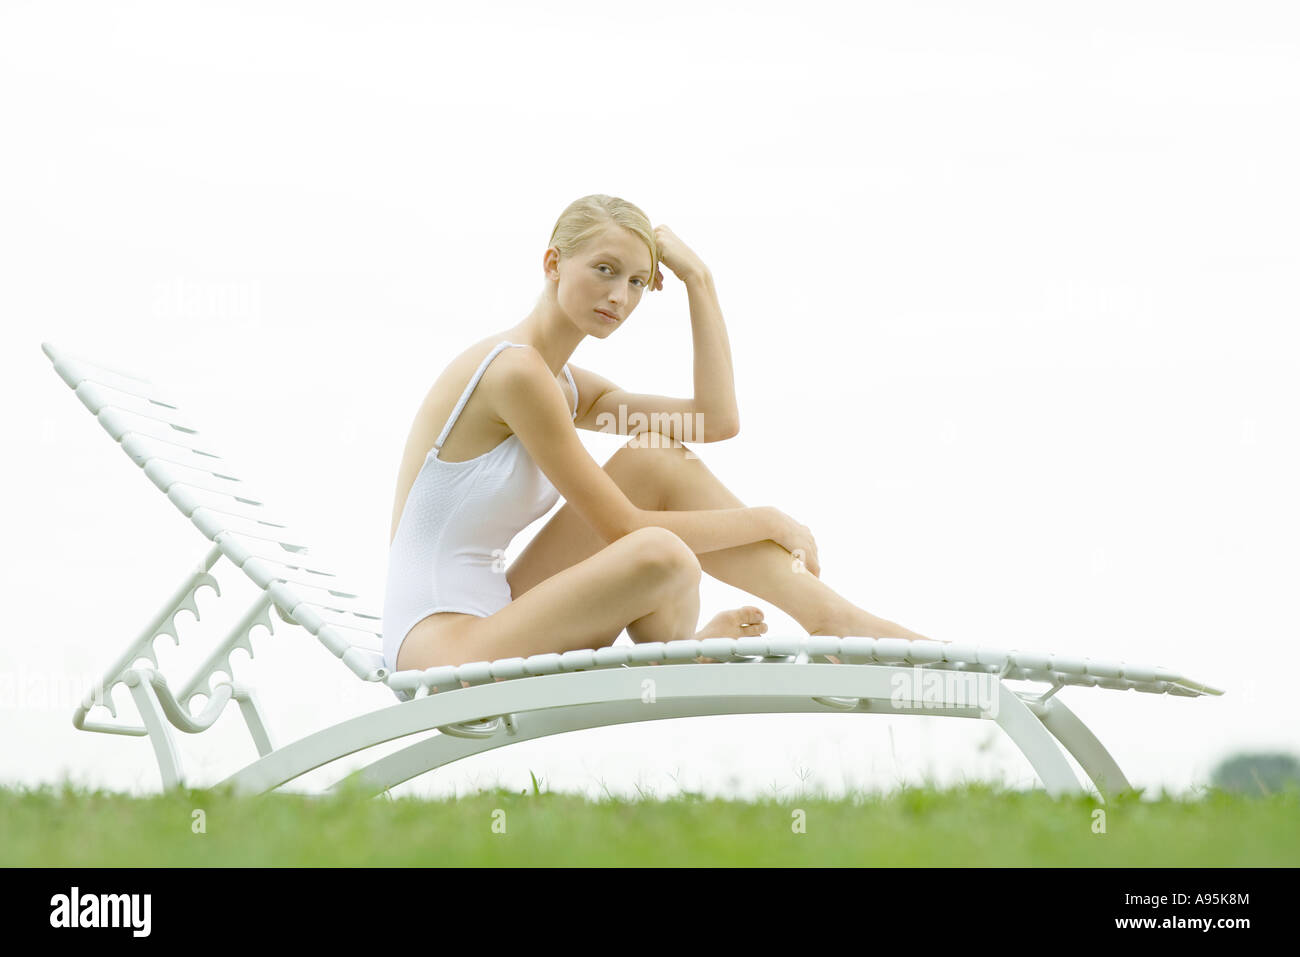 Teenage girl sitting on lounge chair, knee up, looking at camera - Stock Image